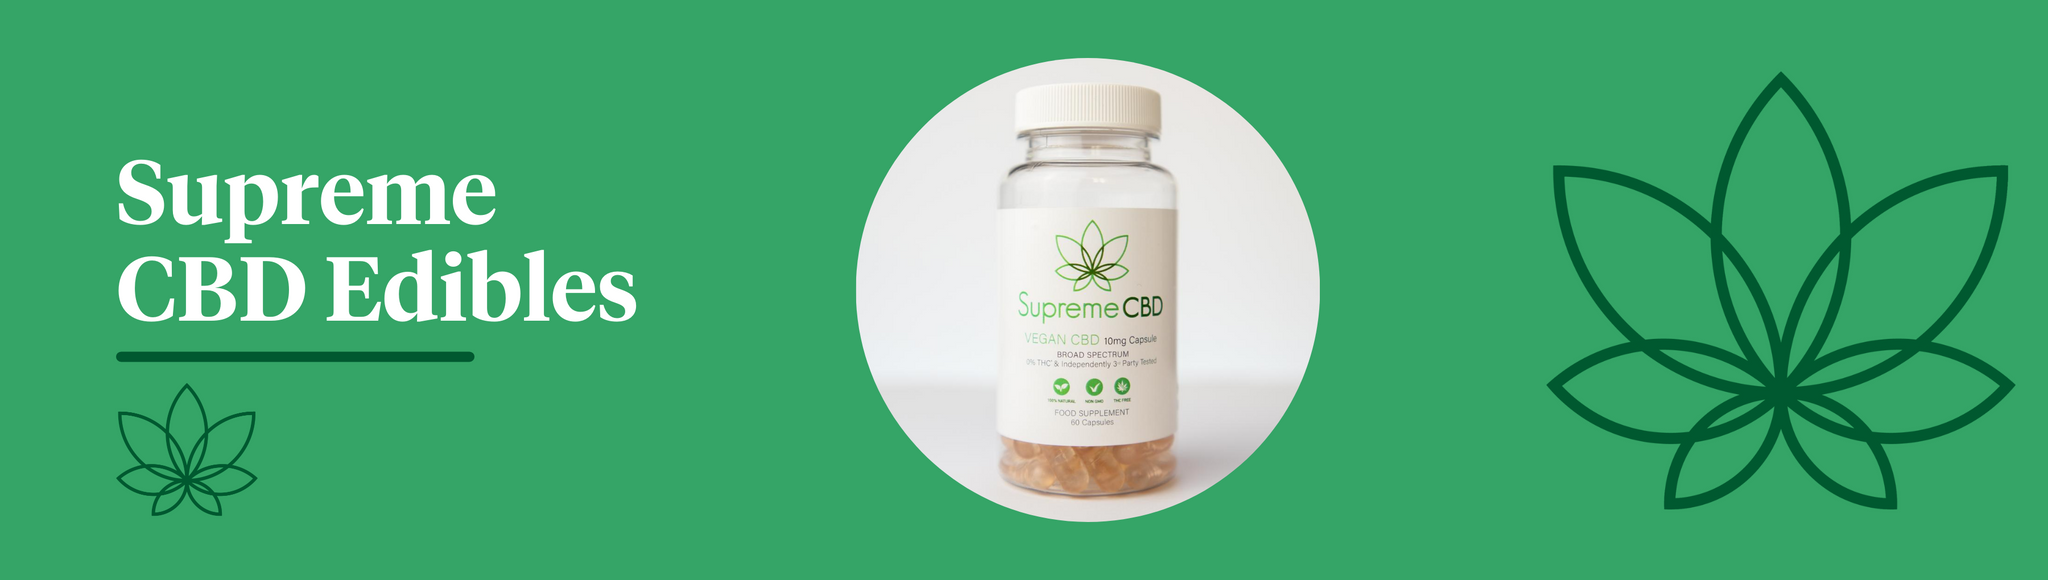 A green background with the Supreme CBD logo to the right and a bottle of Supreme CBD edible capsules in the centre